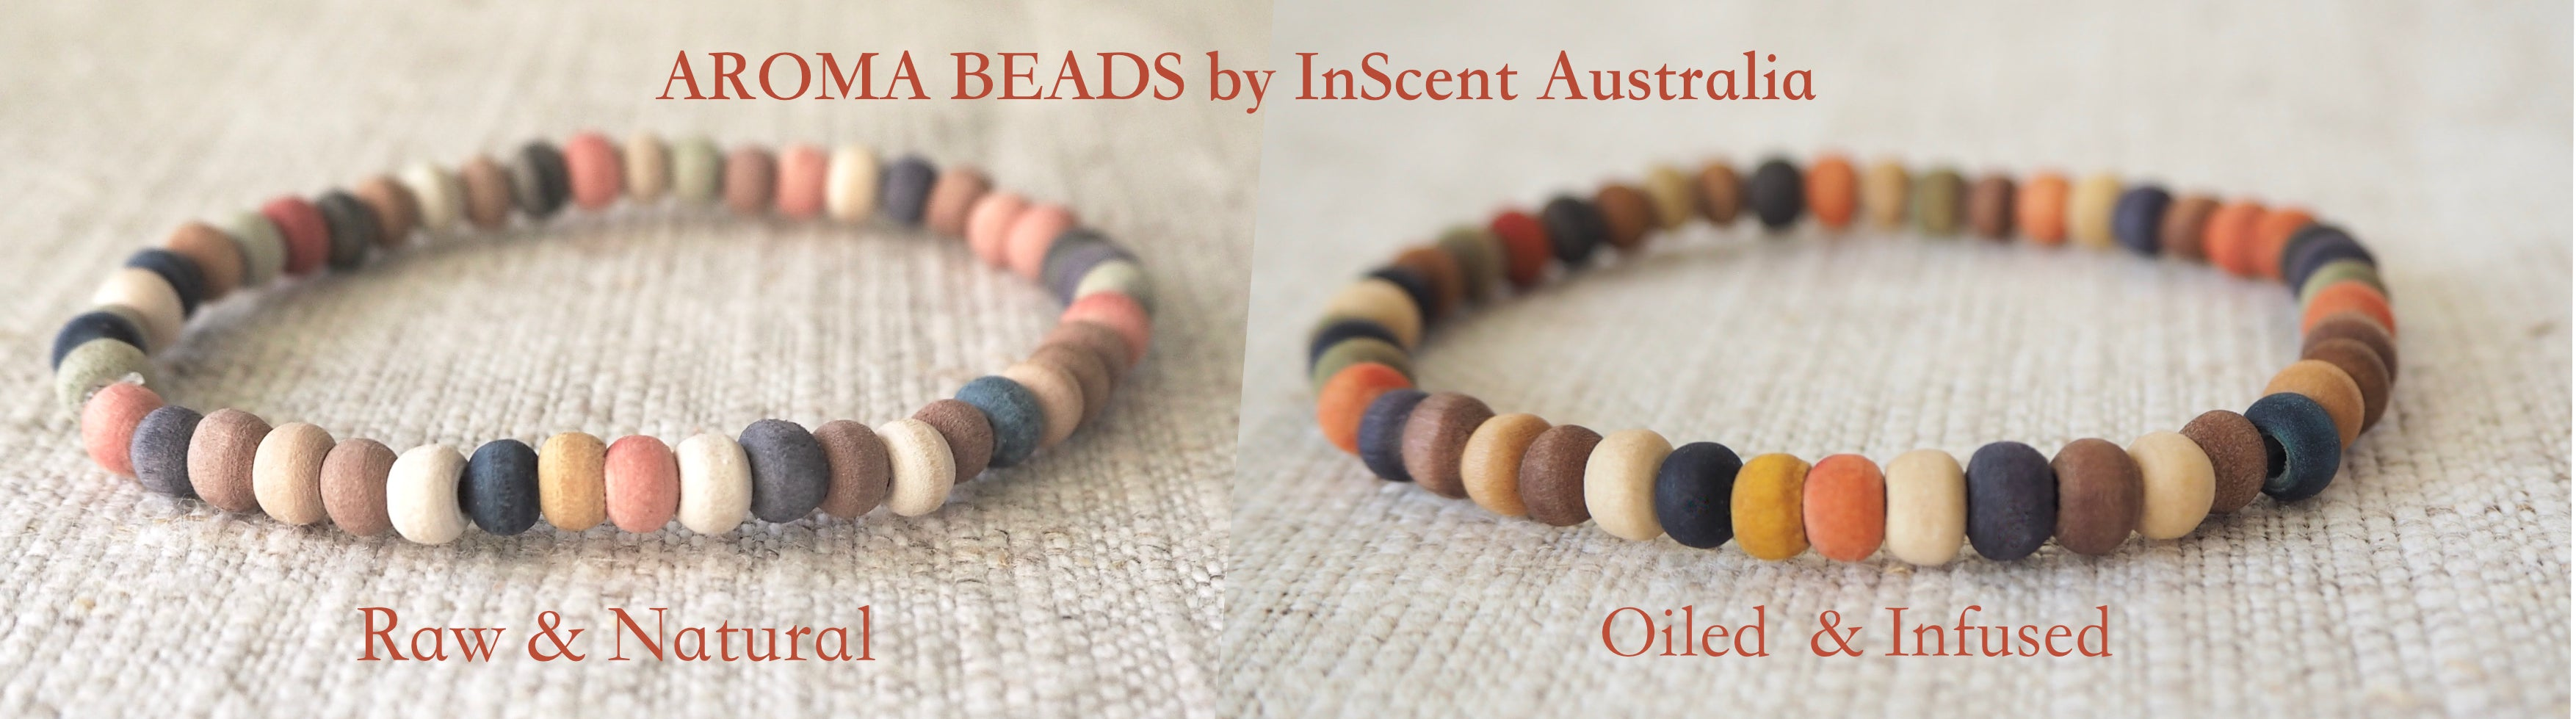 Aromabeads by InScent Australia hand made product combines beauty of Wood with power of Botanicals